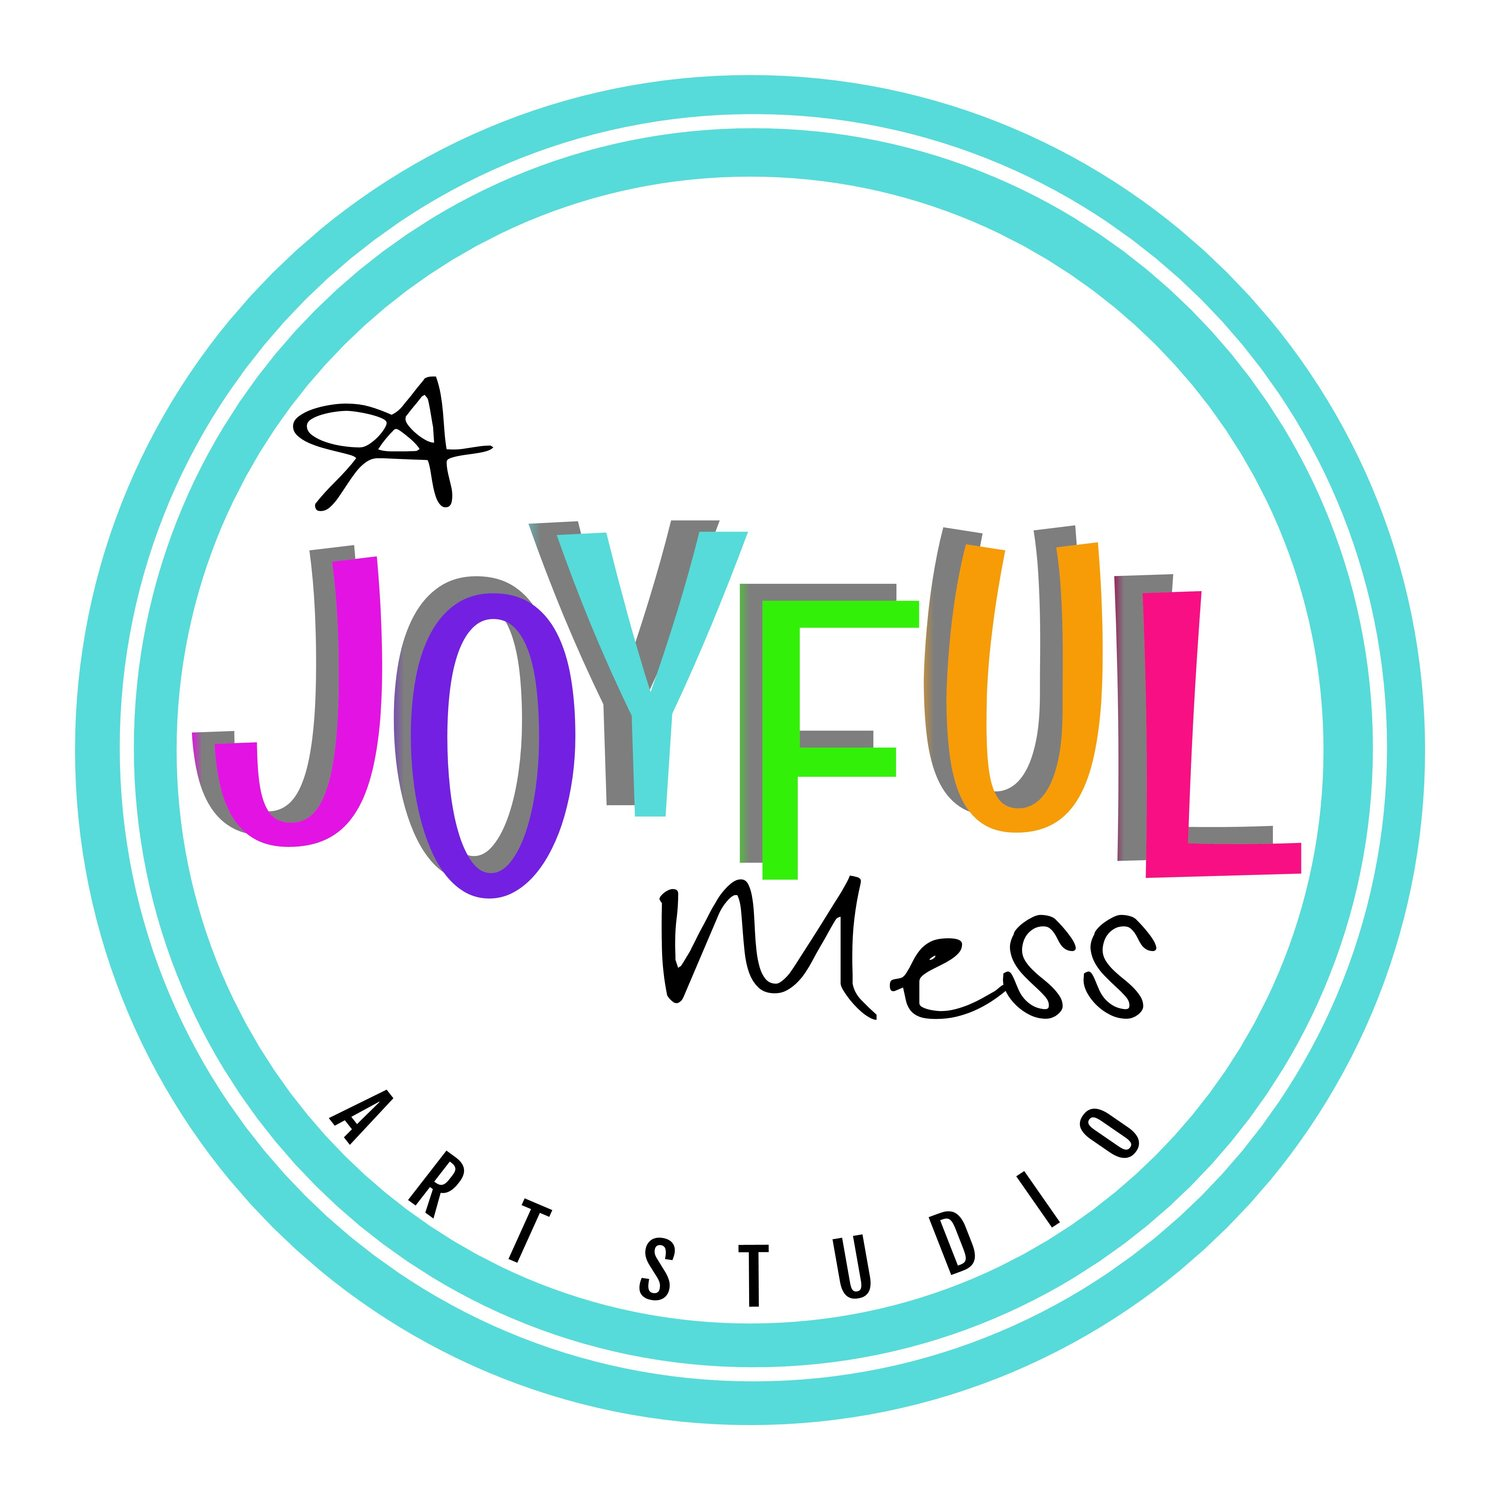 A Joyful Mess Art Studio